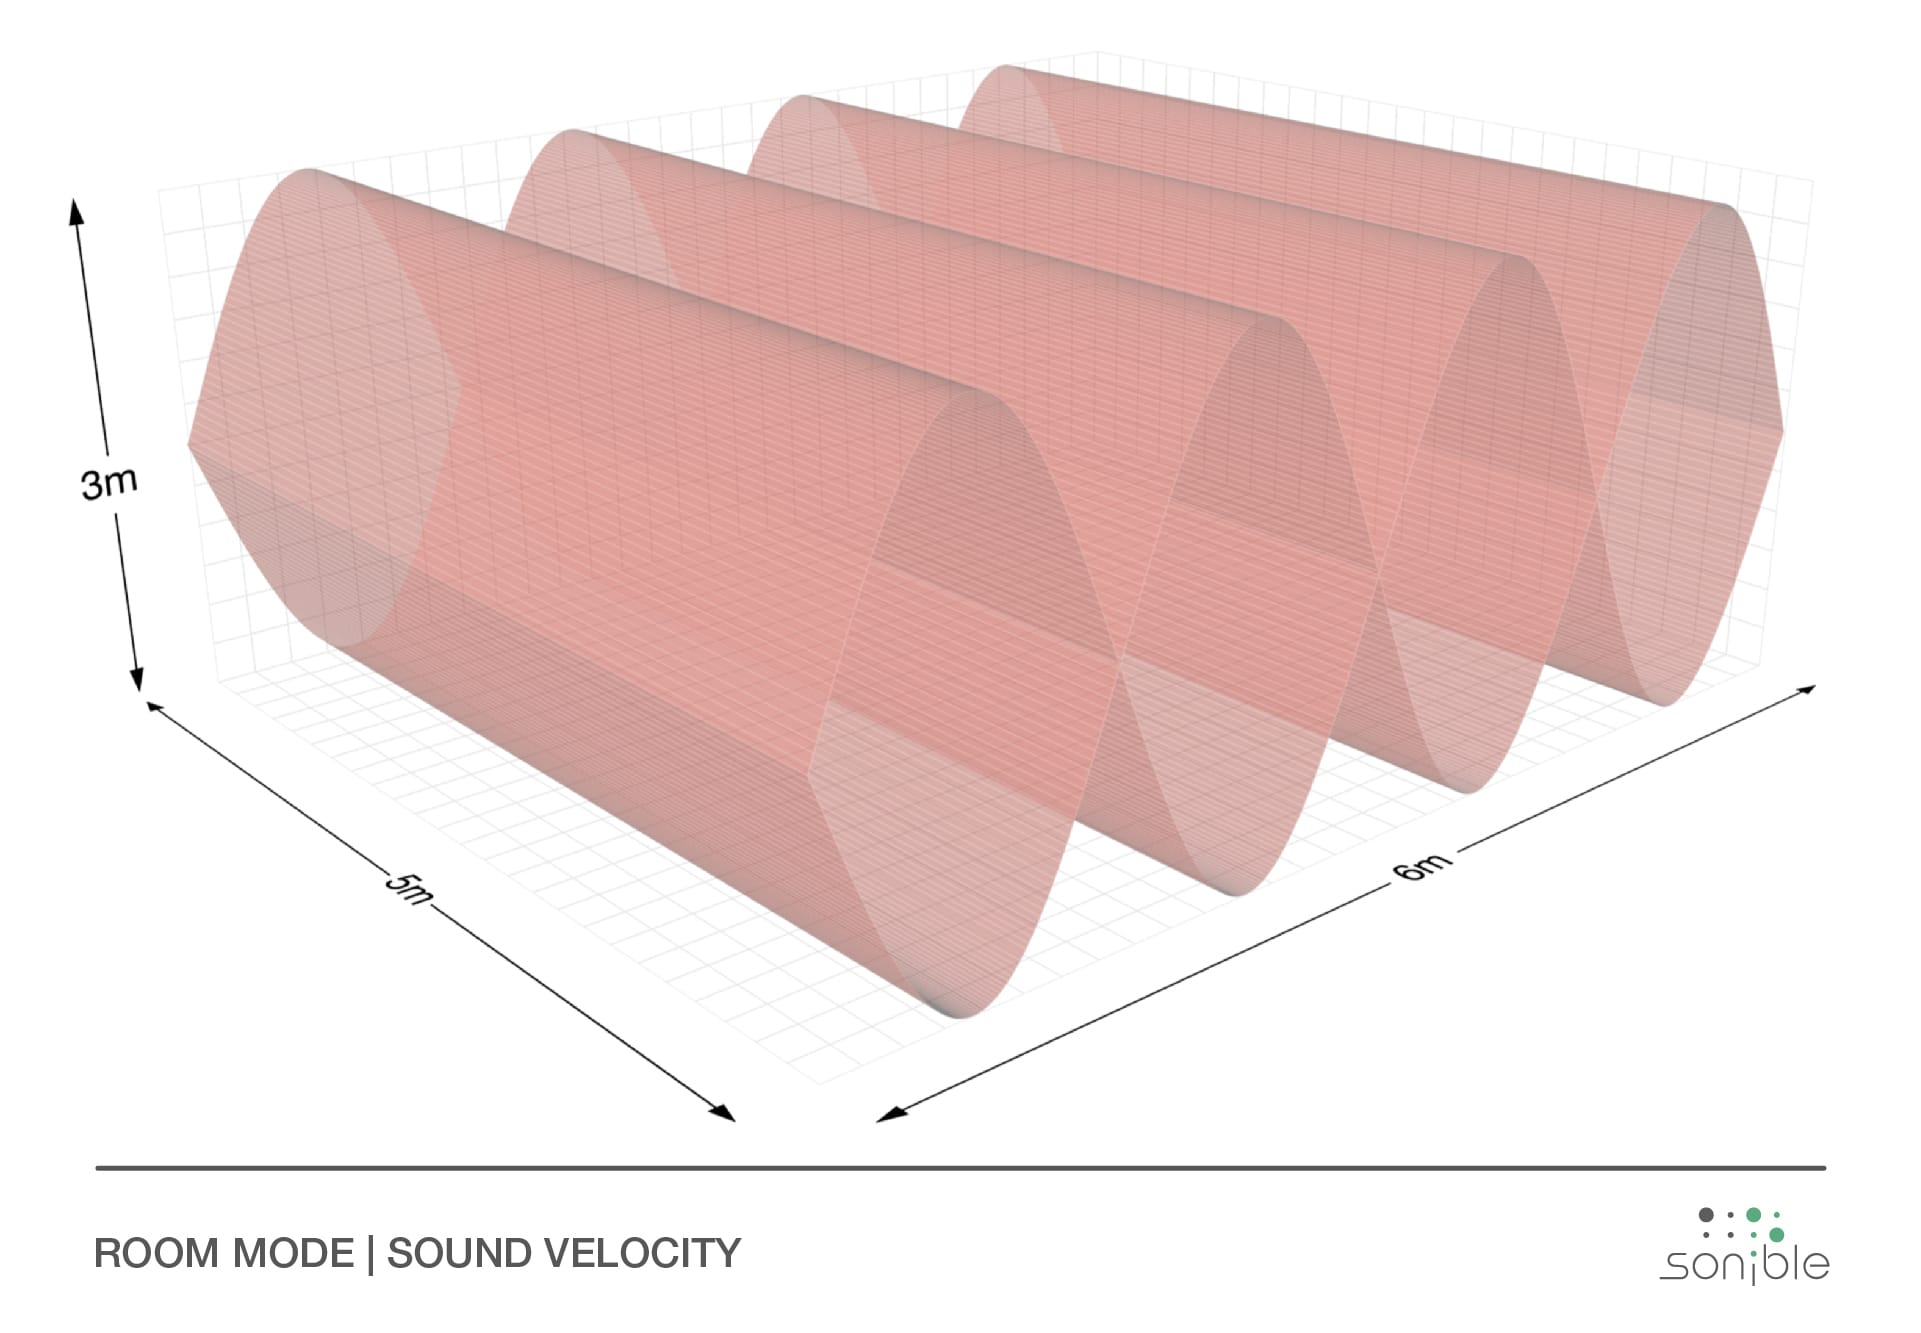 sound velocity inside ideal room